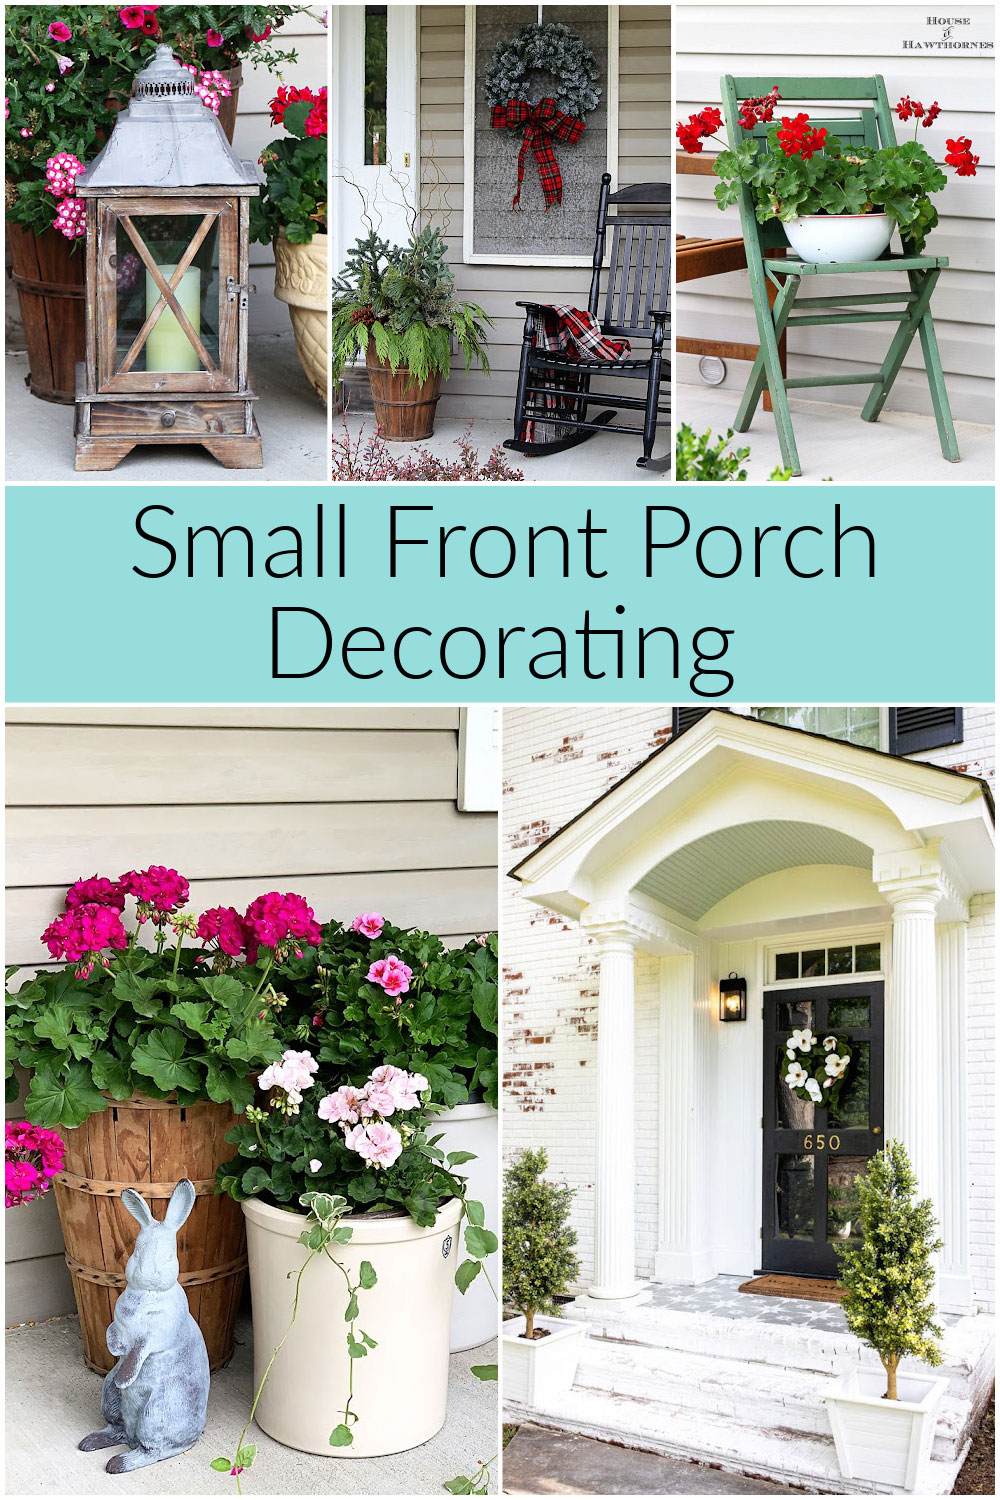 Best ideas for decorating small front porches.